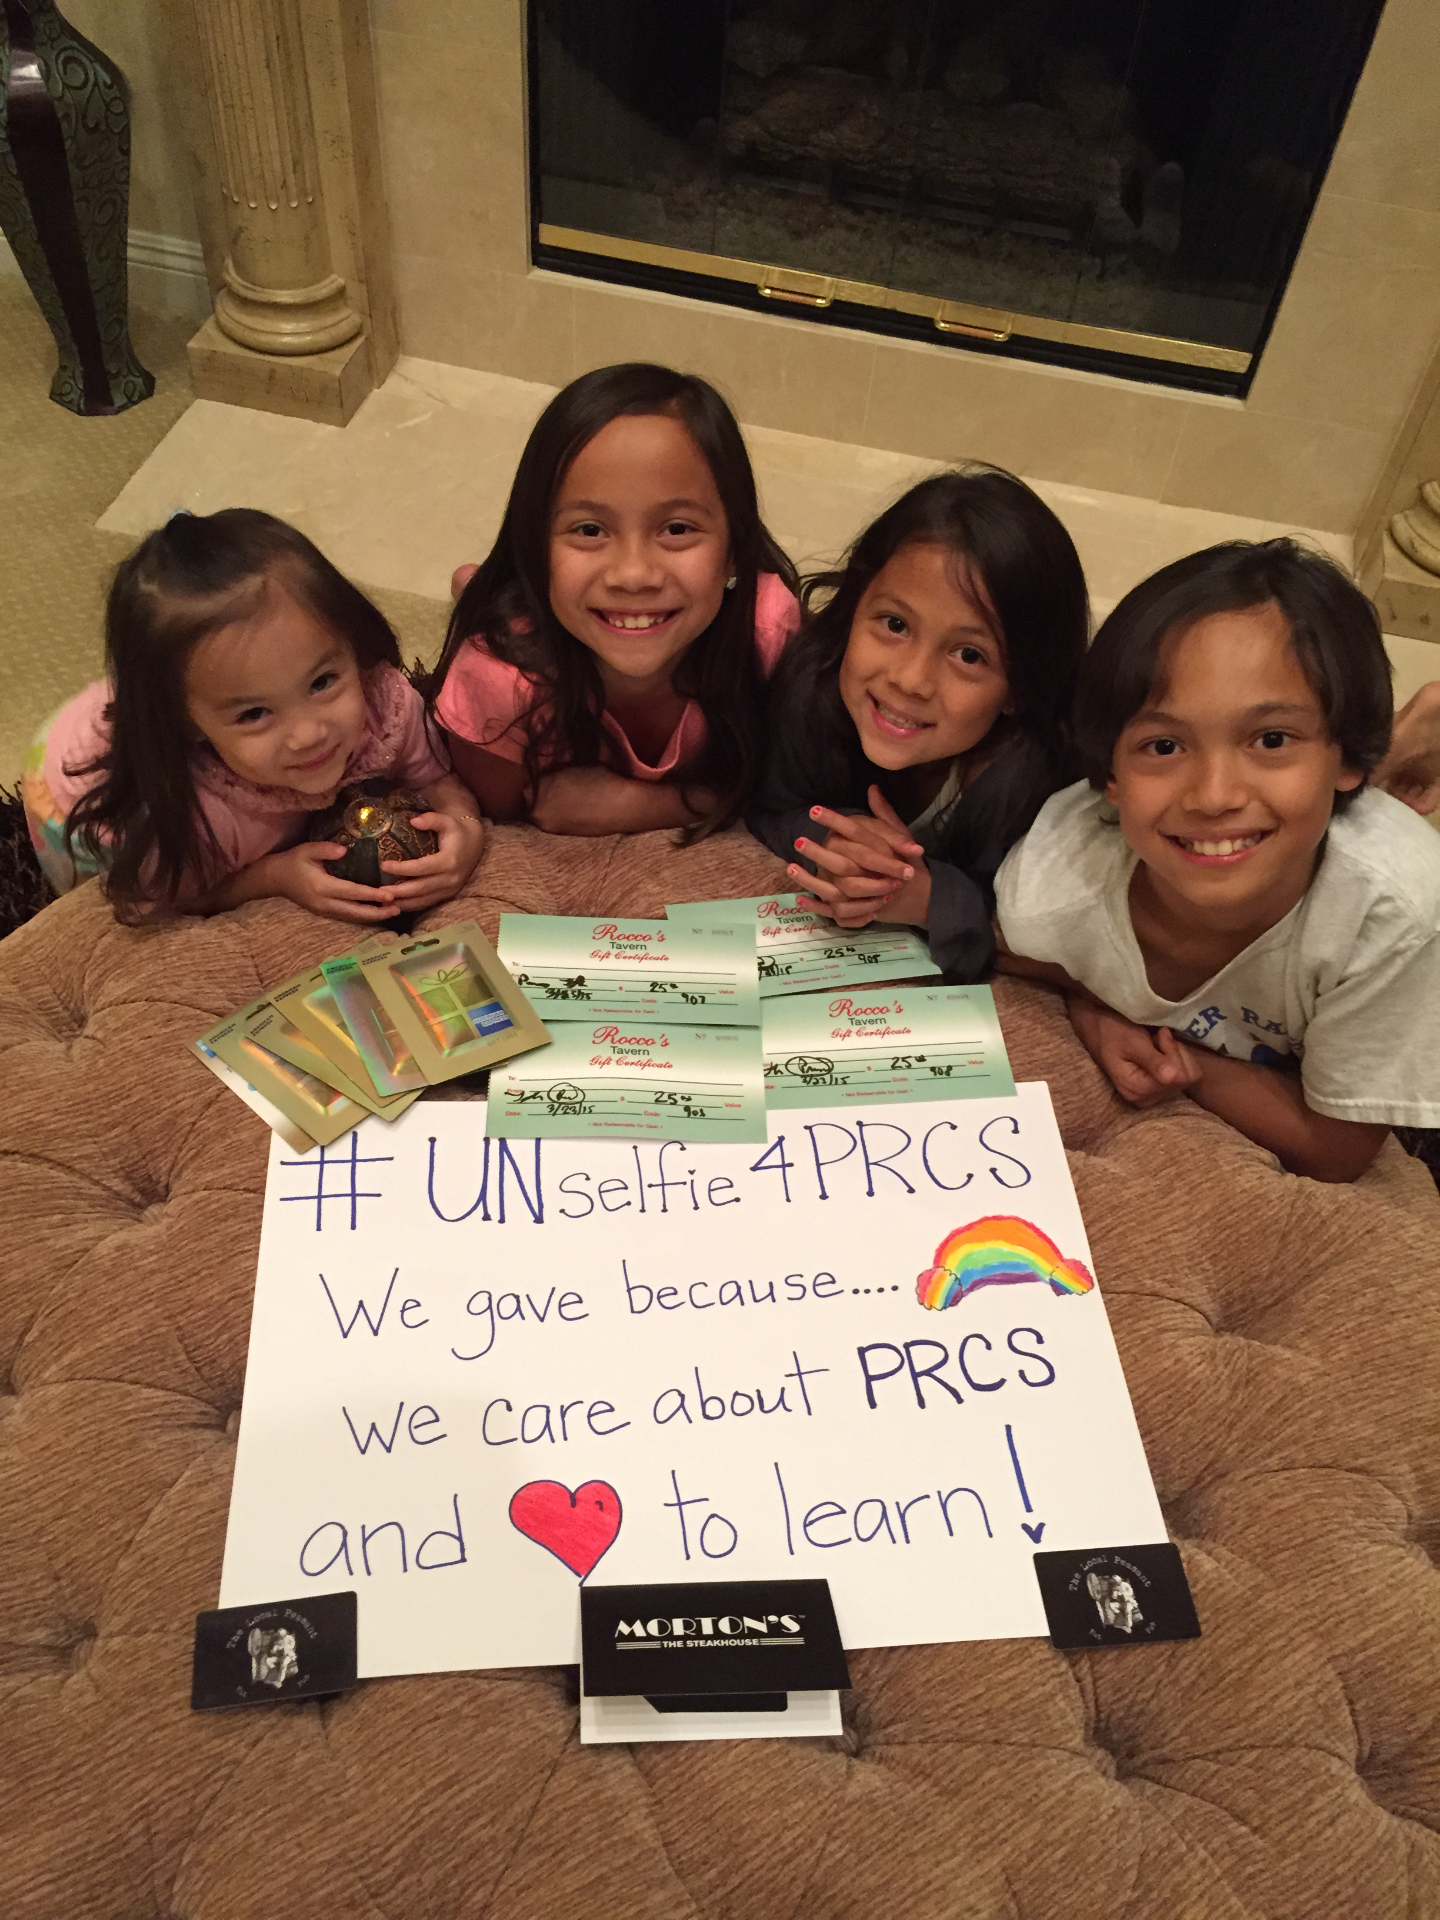 #UNselfie4PRCS is still continuing